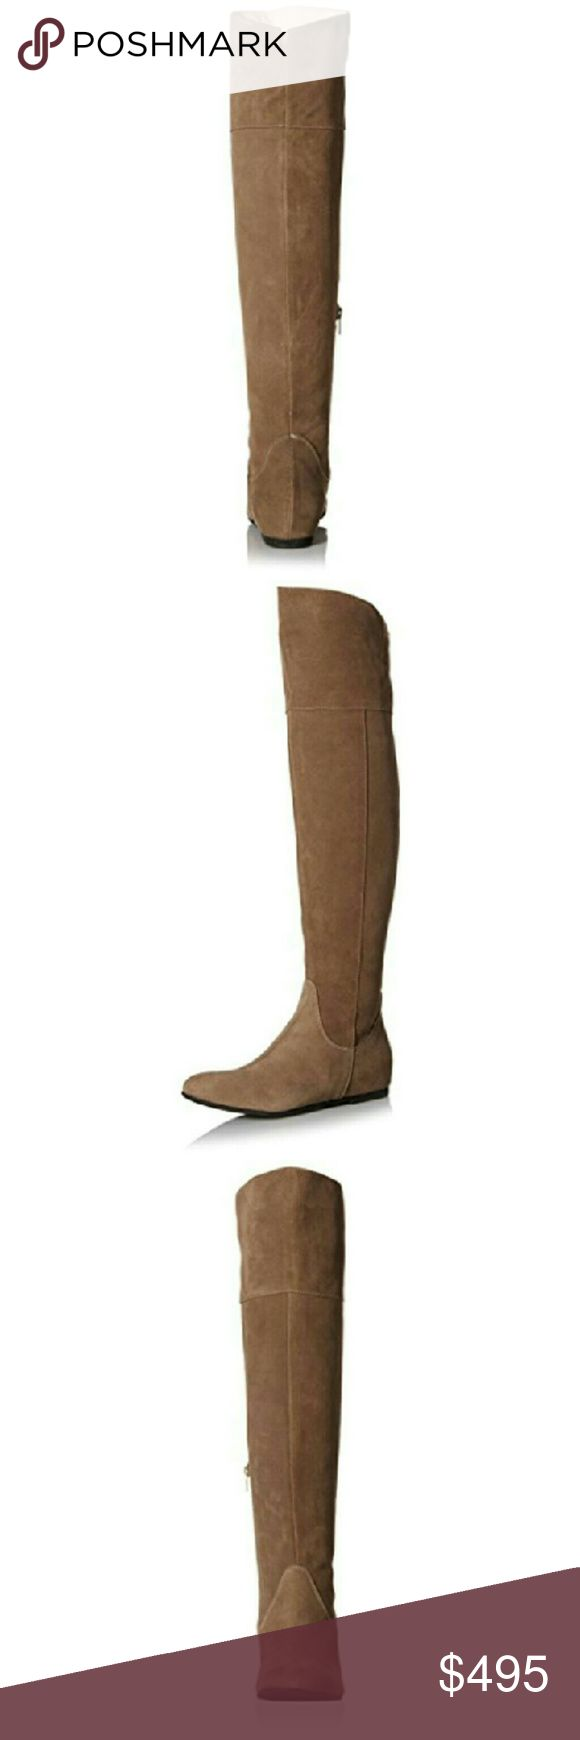 Butter OTK Boots Dished Taupe 7.5M Butter Womens Dished Taupe Over-The-Knee Boots Shoes 7.5M  Manufacturer: Butter Size: 7.5 Medium Manufacturer Color: Taupe  Retail: $568.00 Condition: New with box Style Type: Fashion Over The Knee Shoe Width: Medium (B, M) Heel Height (Inches): 2 Platform Height (Inches): 1/4 Shaft Height (Inches): 21 1/4 Shaft Width (Inches): 15  Closure: Side Zipper Material: Leather Fabric Type: Suede Style Number: DISHED Butter Shoes Shoes Over the Knee Boots